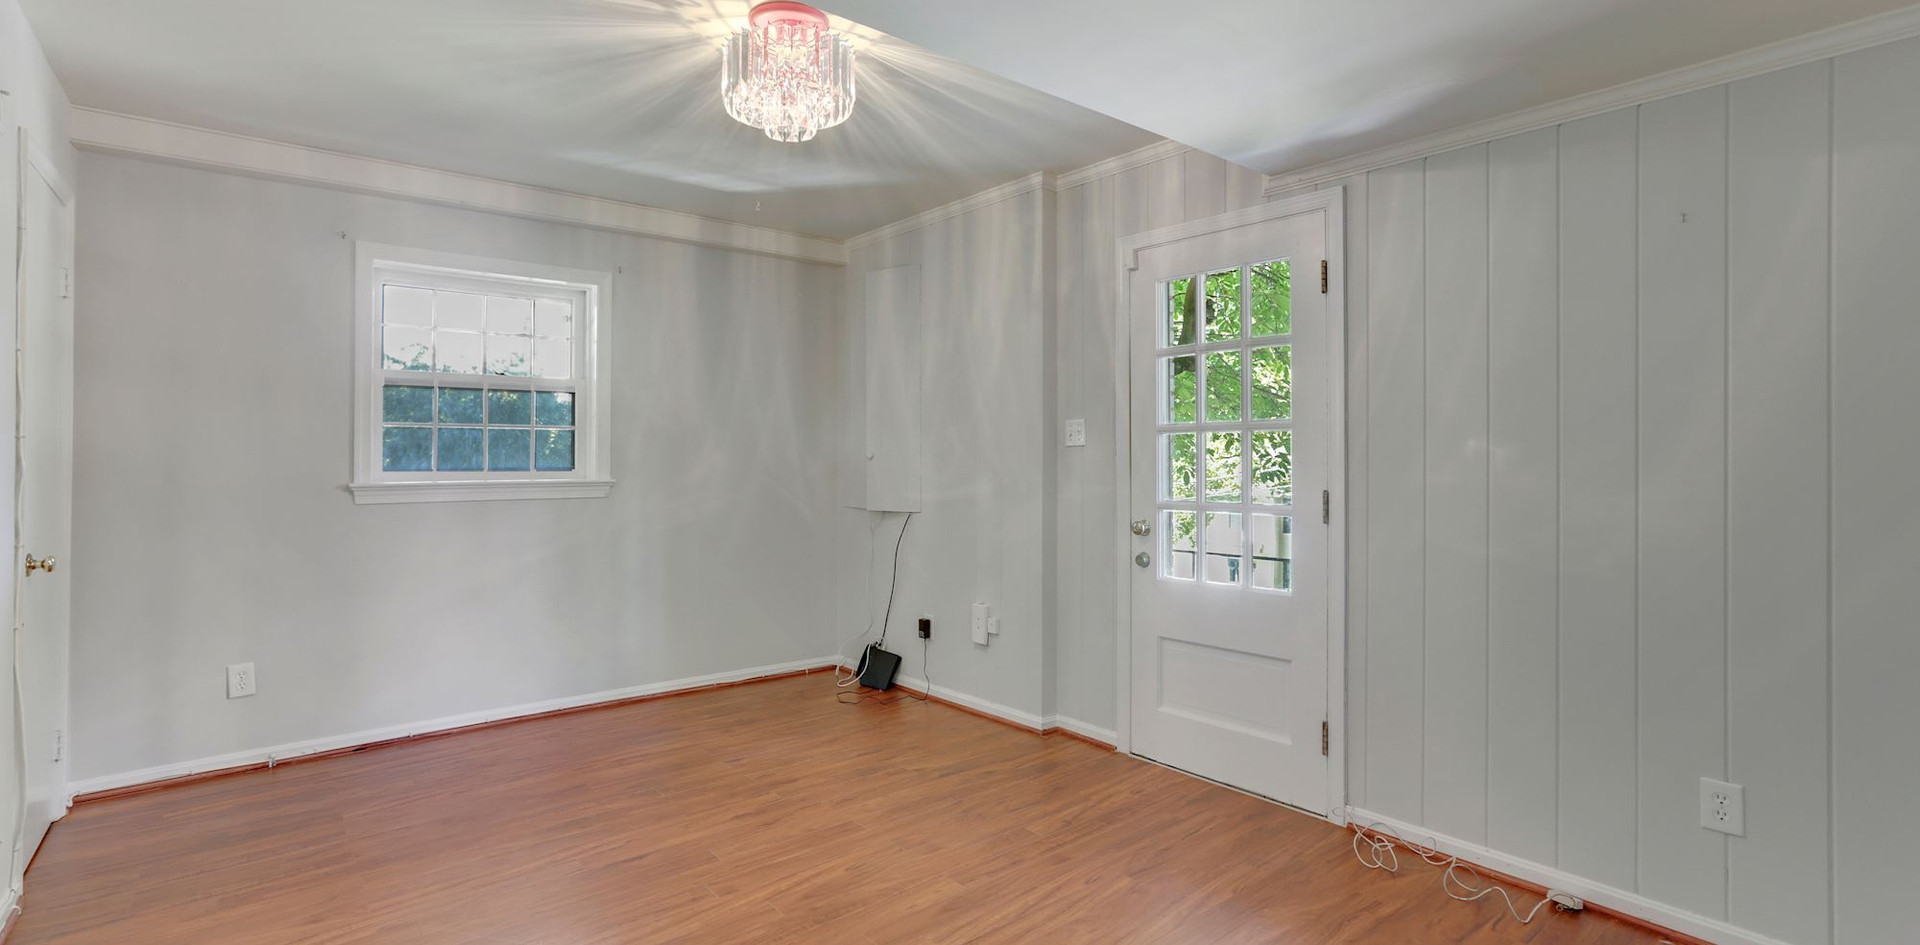 And Fifth Bedroom for Au Pair, In Laws, or Guests